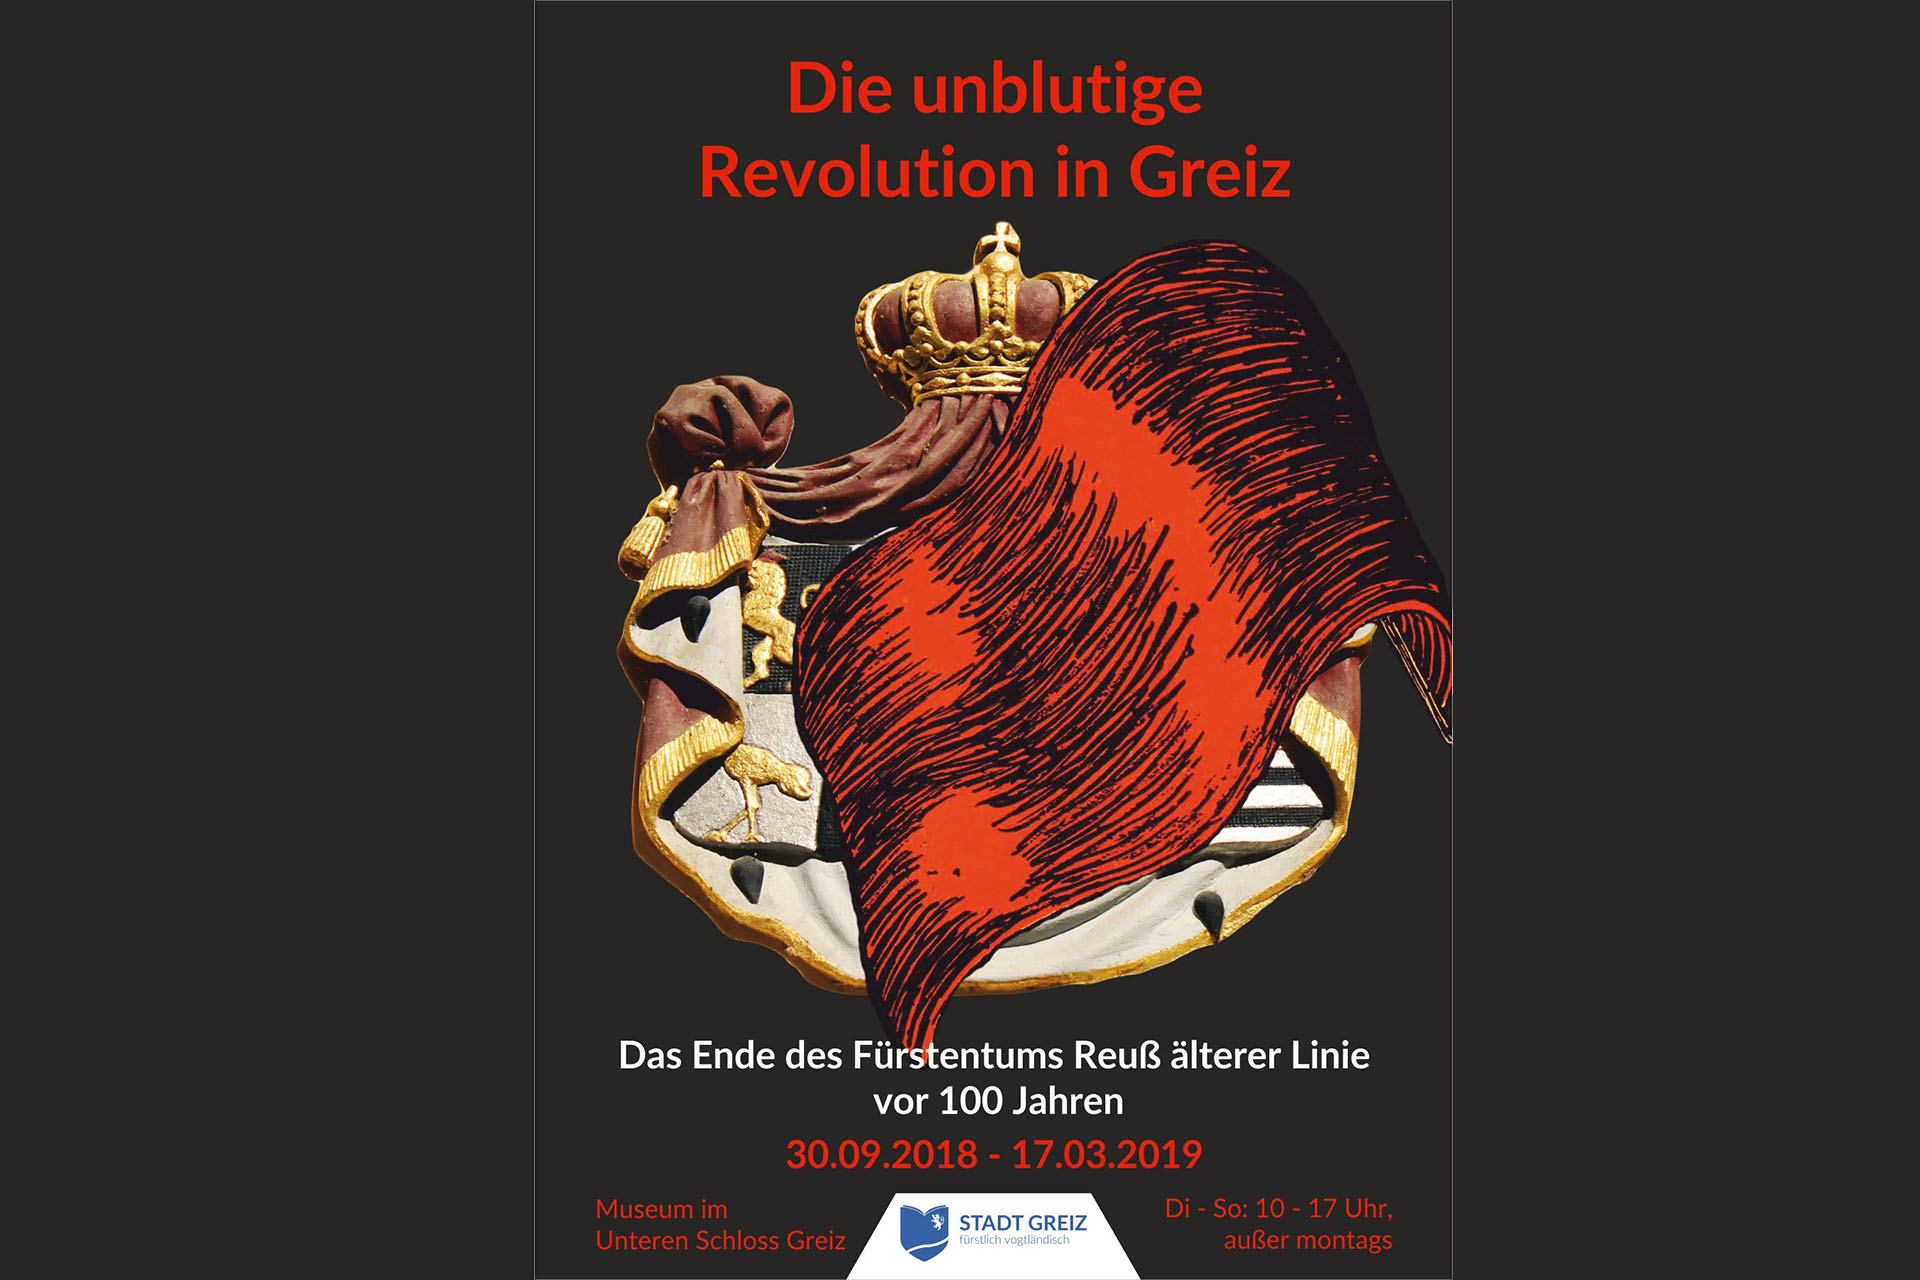 DIE UNBLUTIGE REVOLUTION IN GREIZ